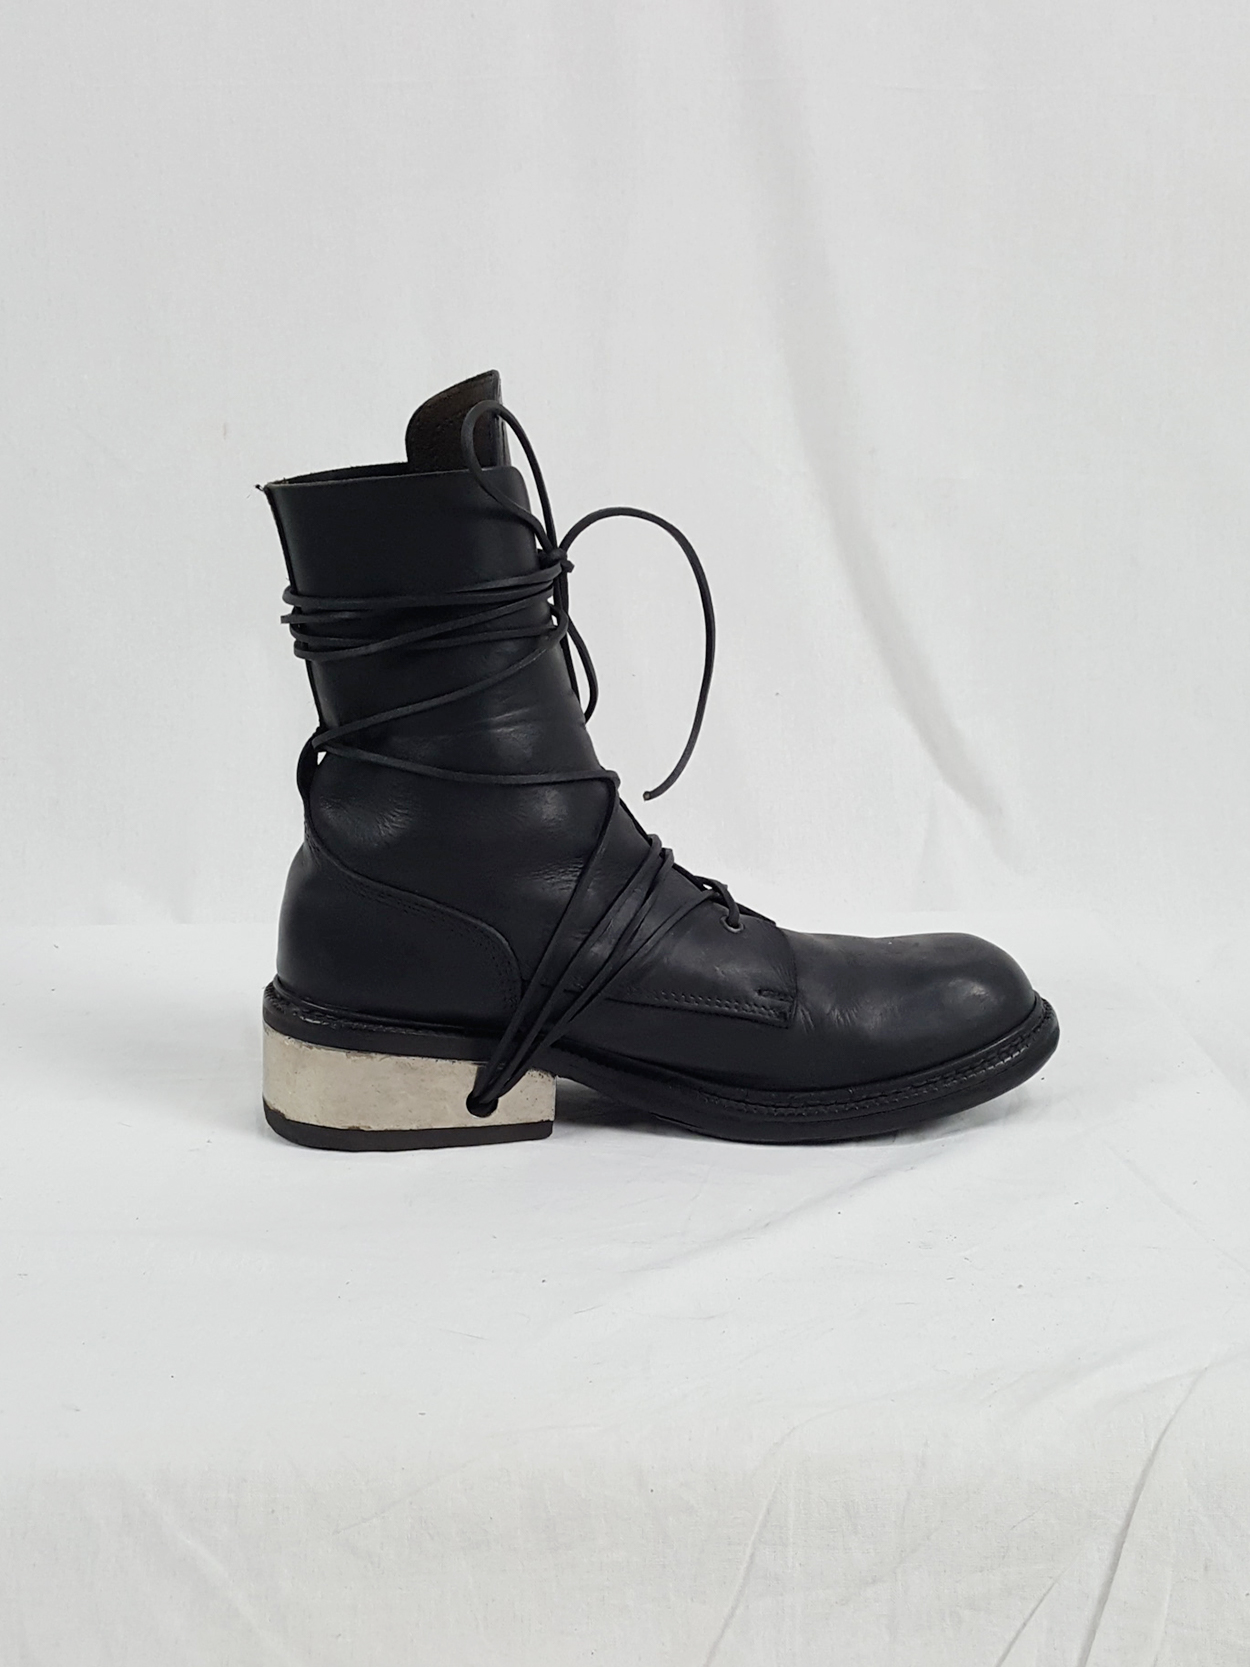 vaniitas vintage Dirk Bikkembergs black tall boots with laces through the metal heel 1990S 90S 175011